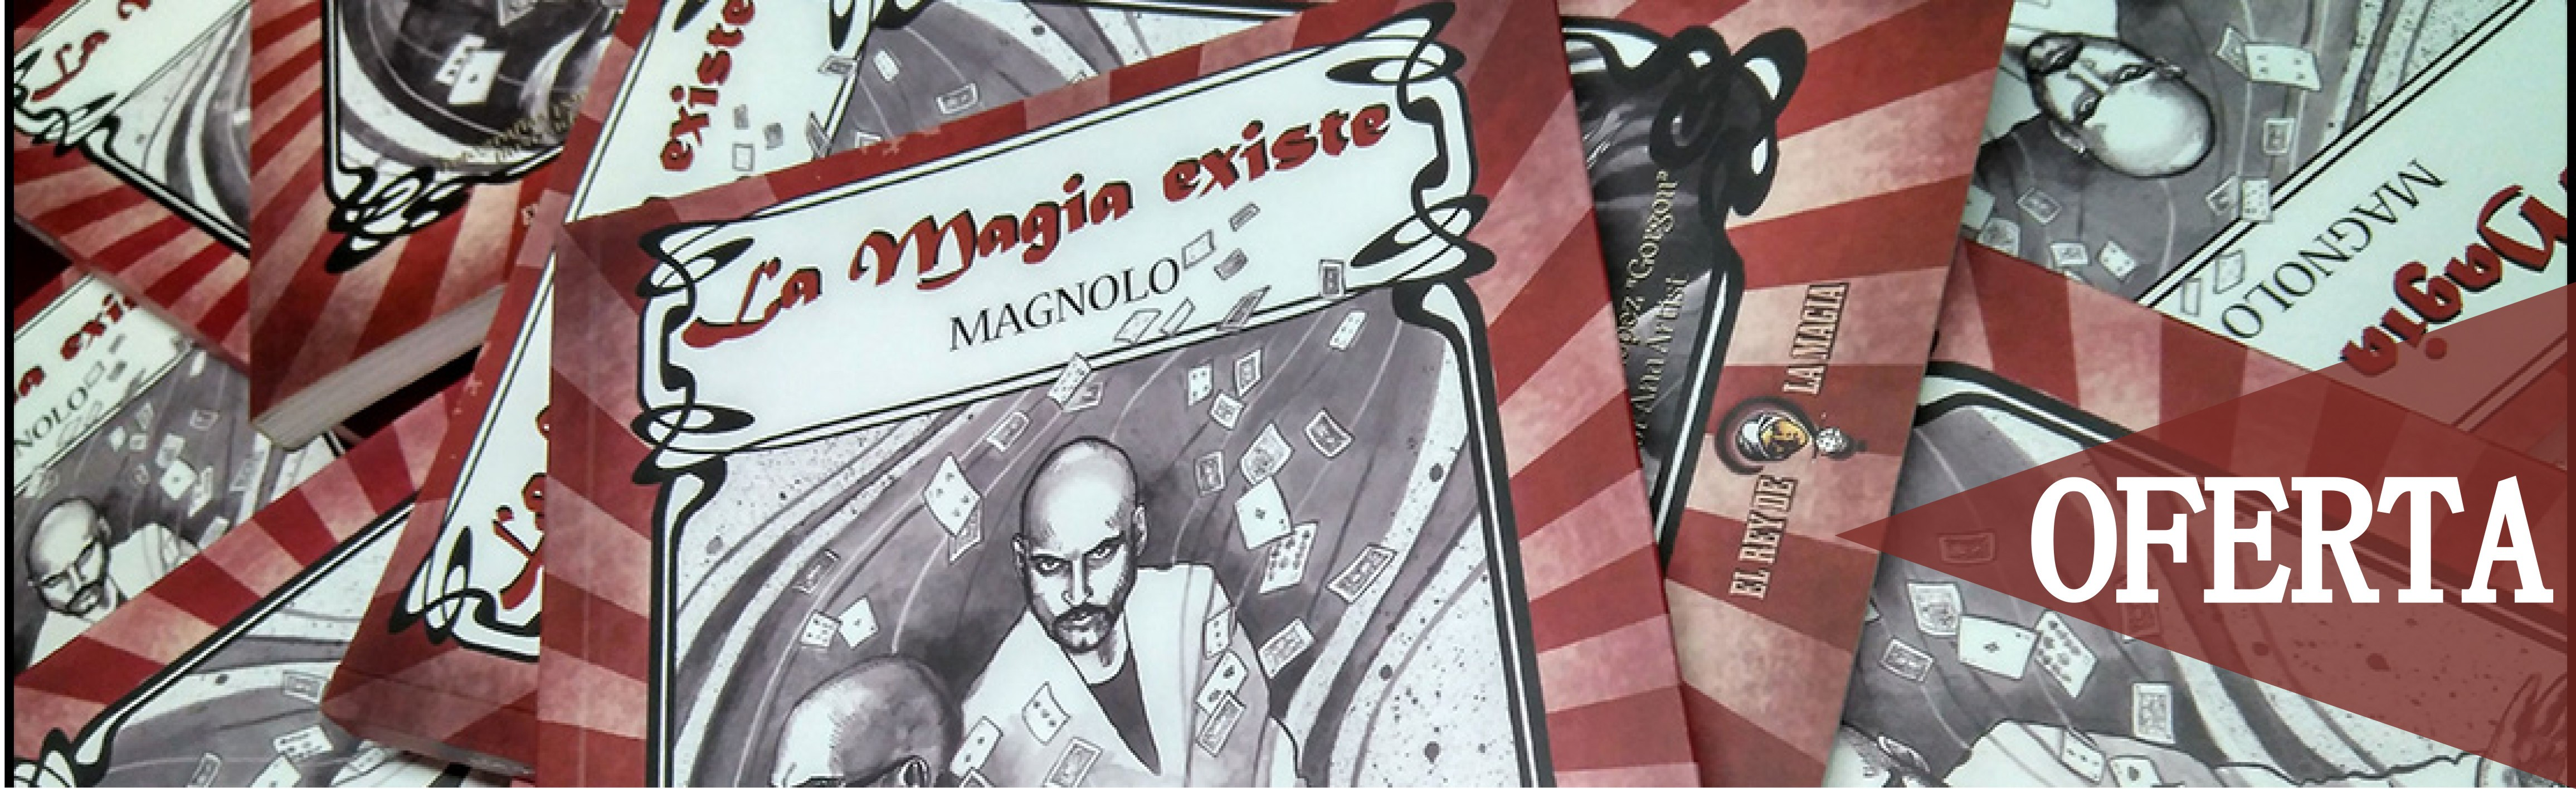 La magia existe magic book only 20€